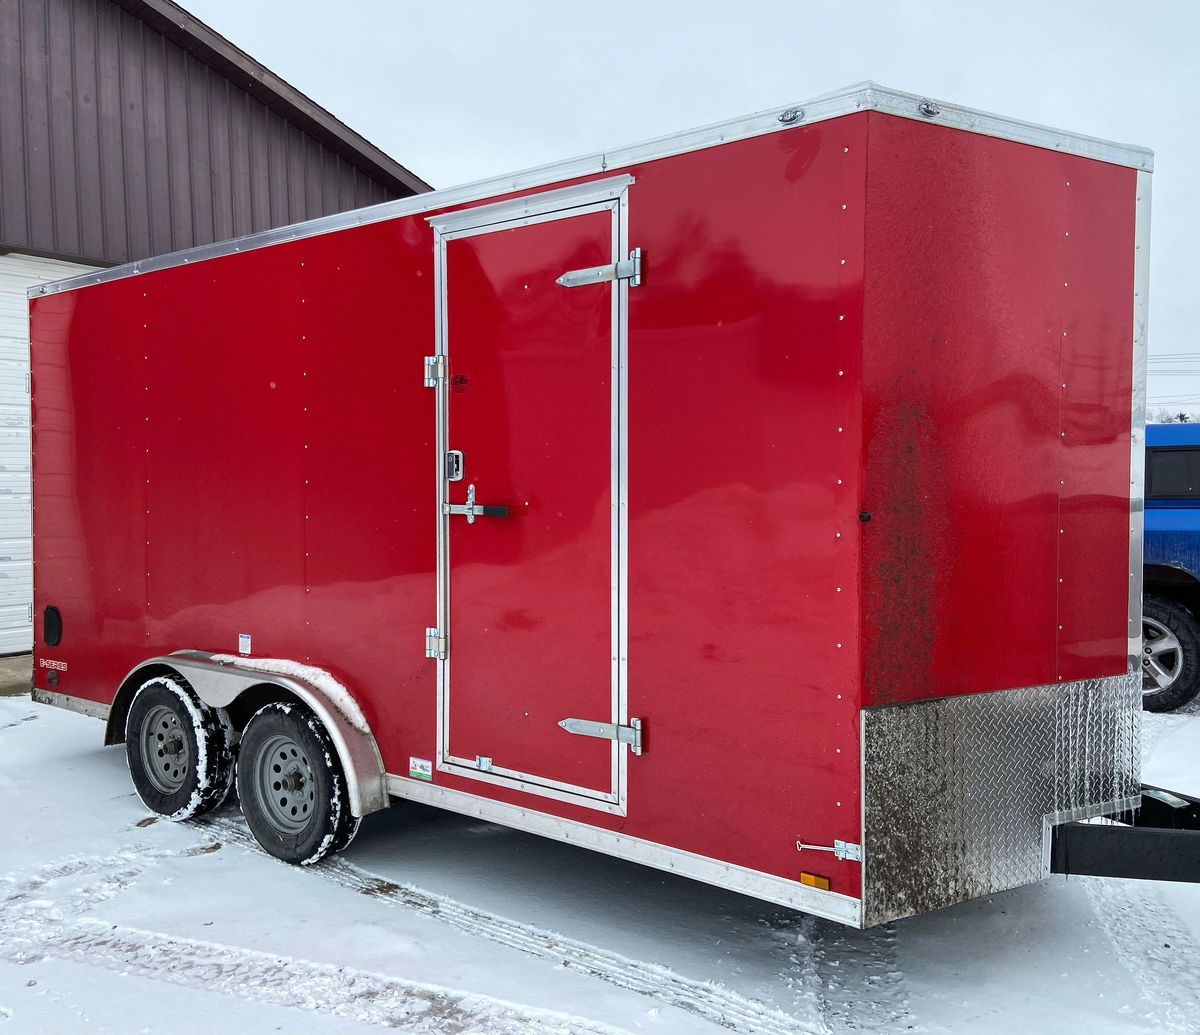 A red trailer with a large door parked in a snowy driveway